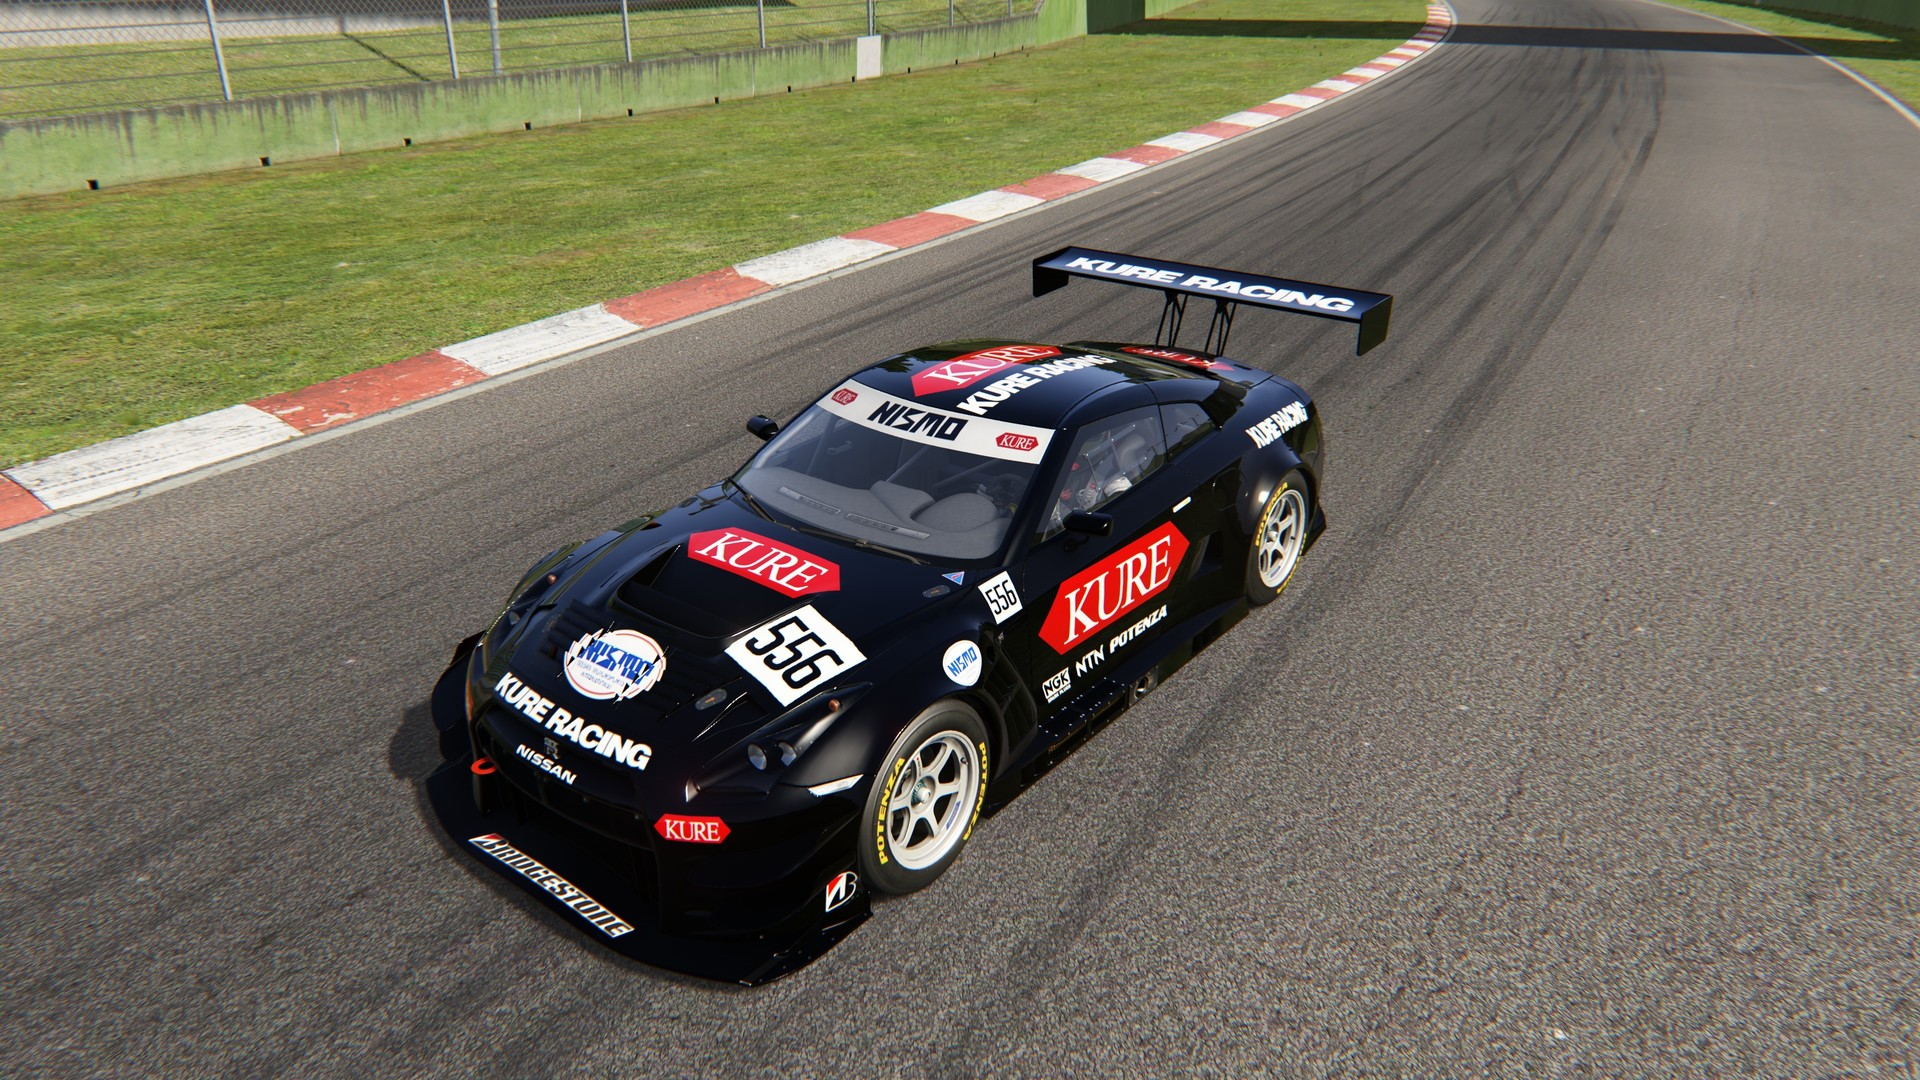 Screenshot_ks_nissan_gtr_gt3_imola_17-10-116-17-32-16.jpg